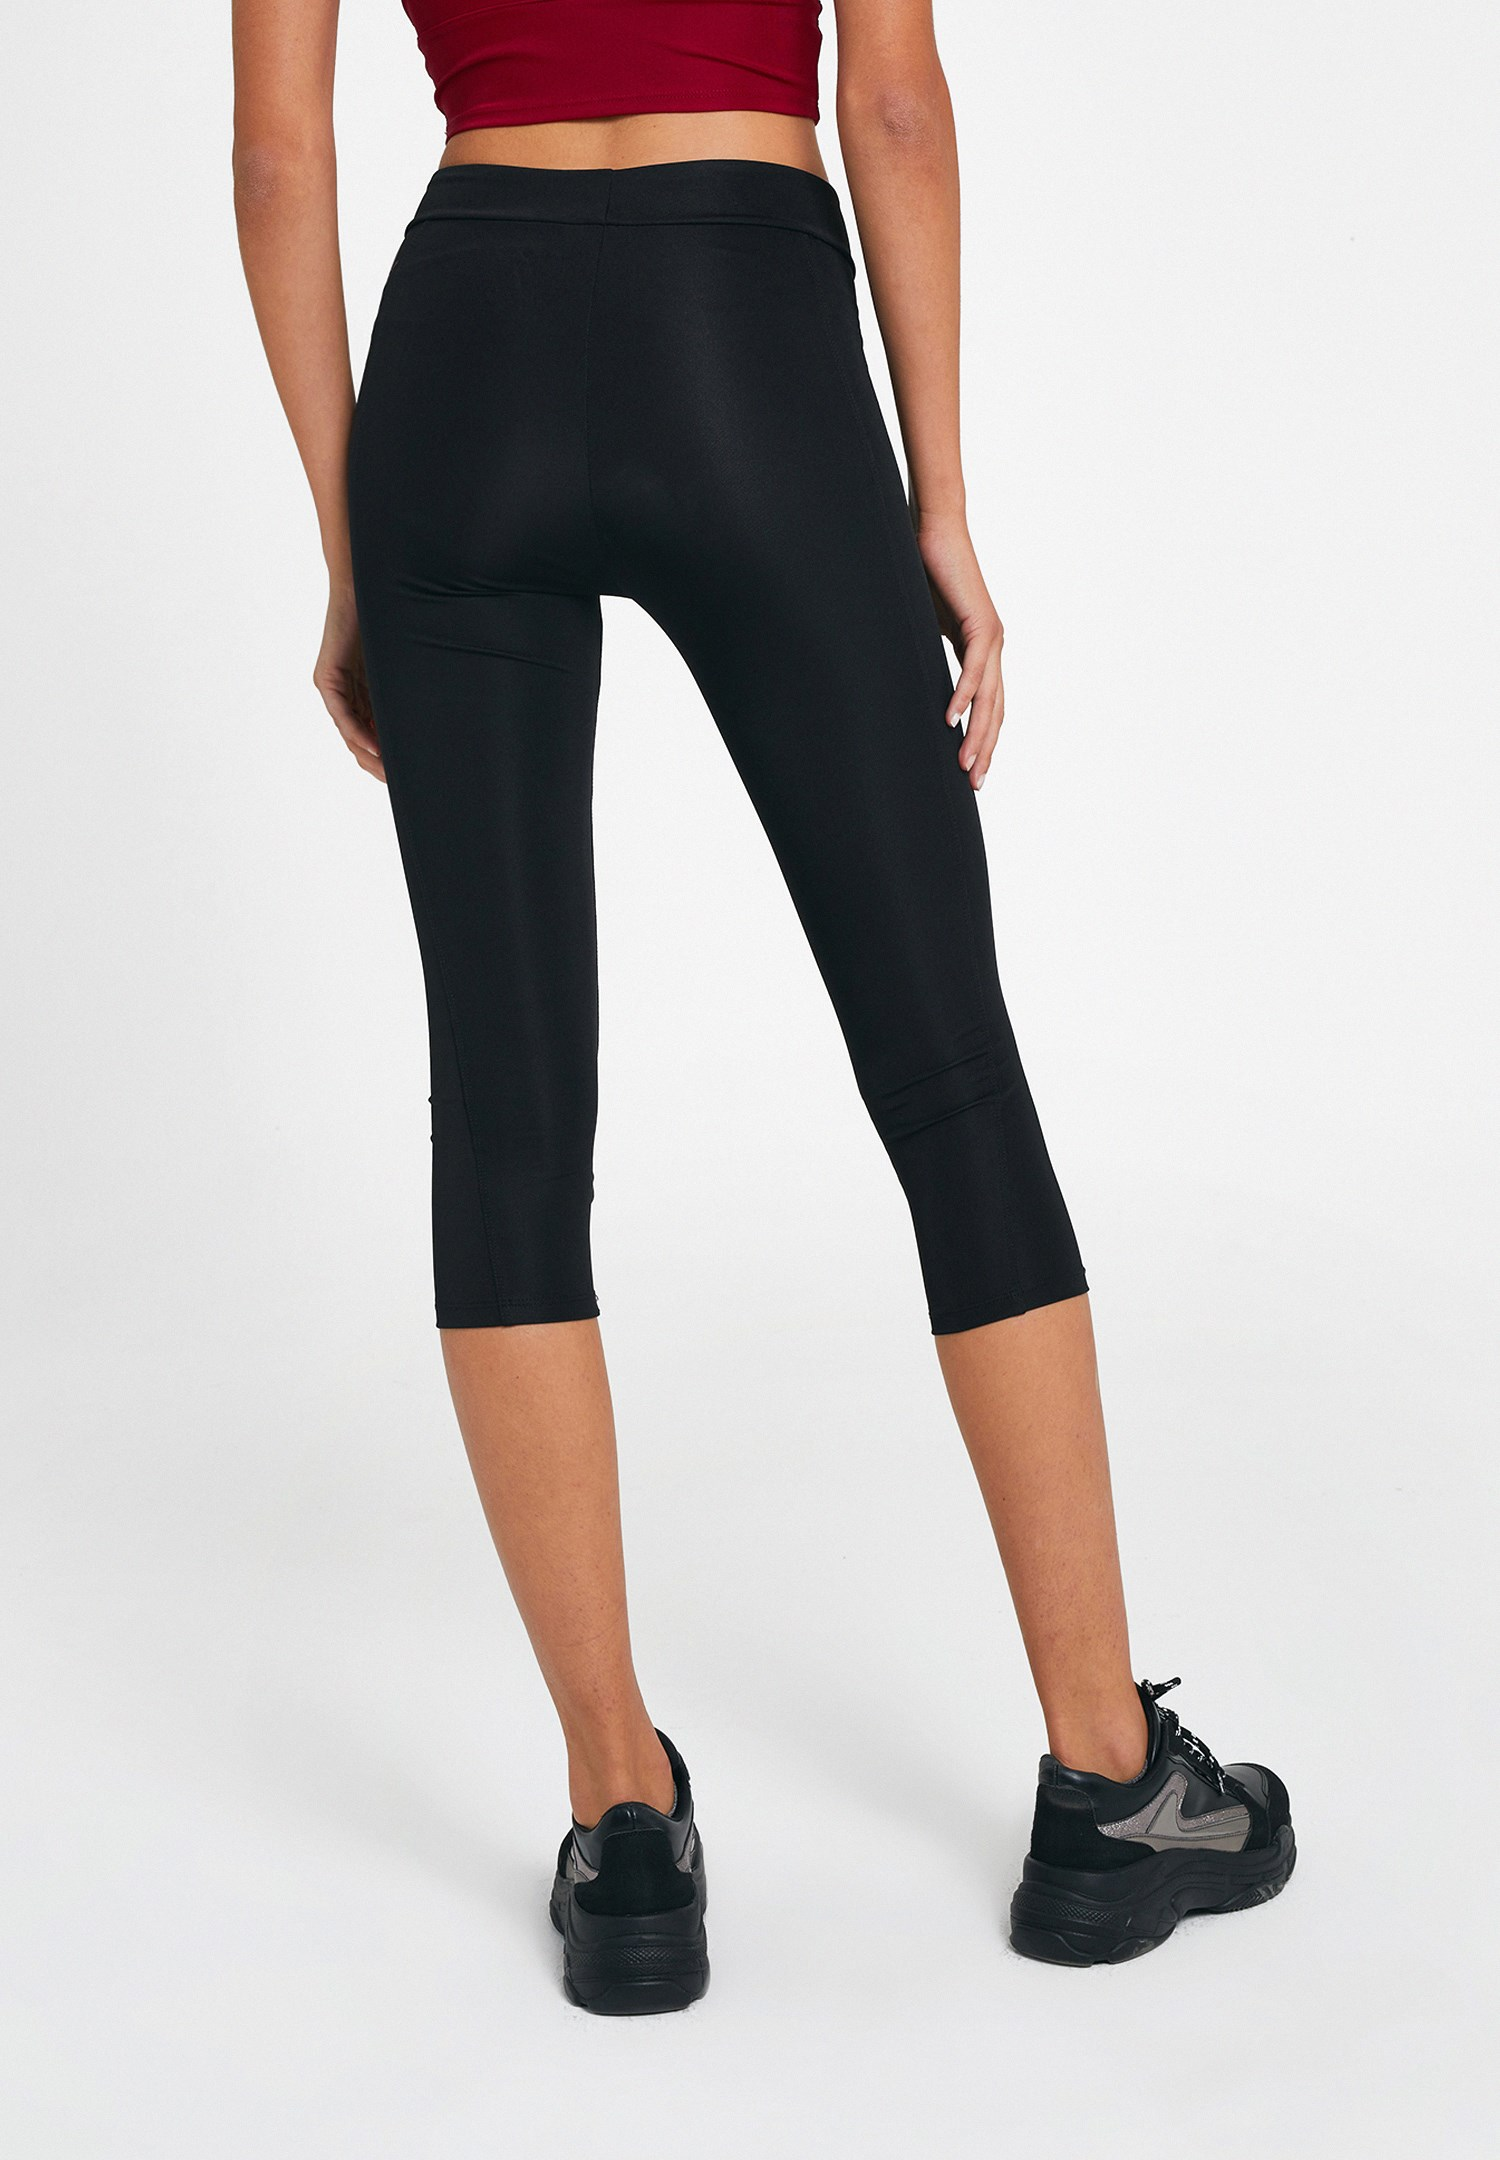 Women Black Shiny Sport Legging